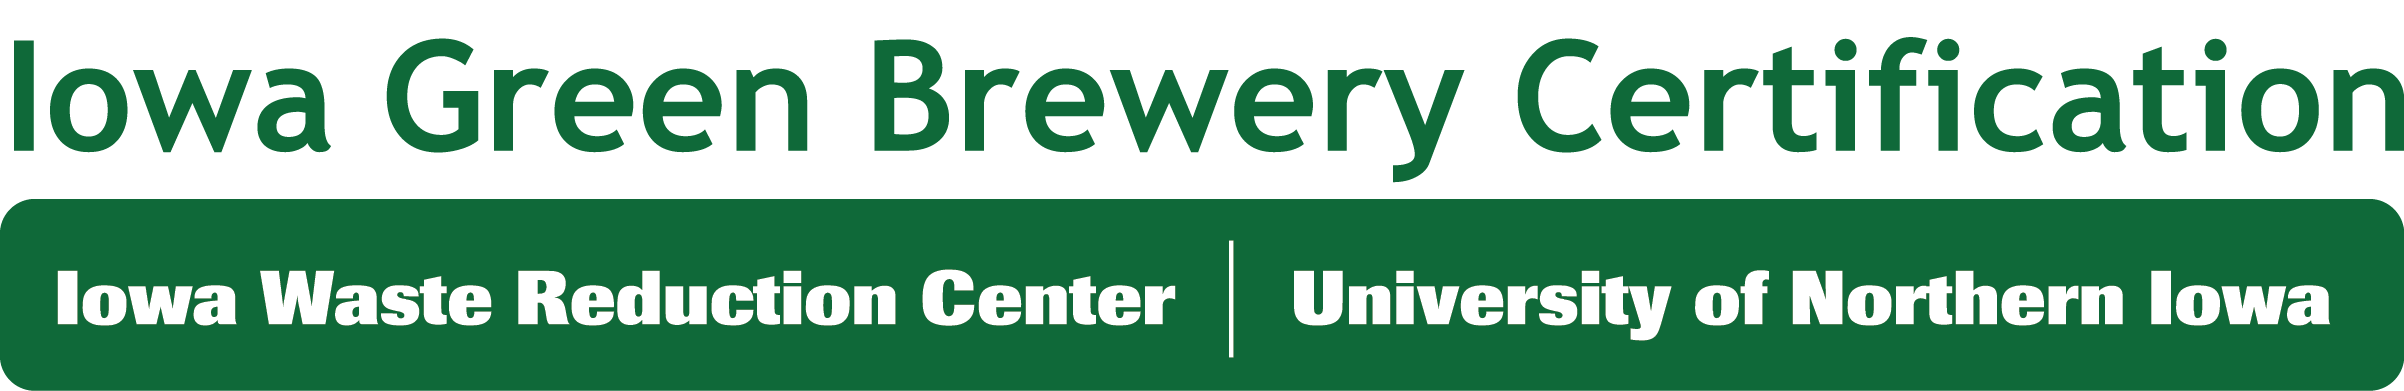 Iowa Green Brewery Certification Iowa Waste Reduction Center